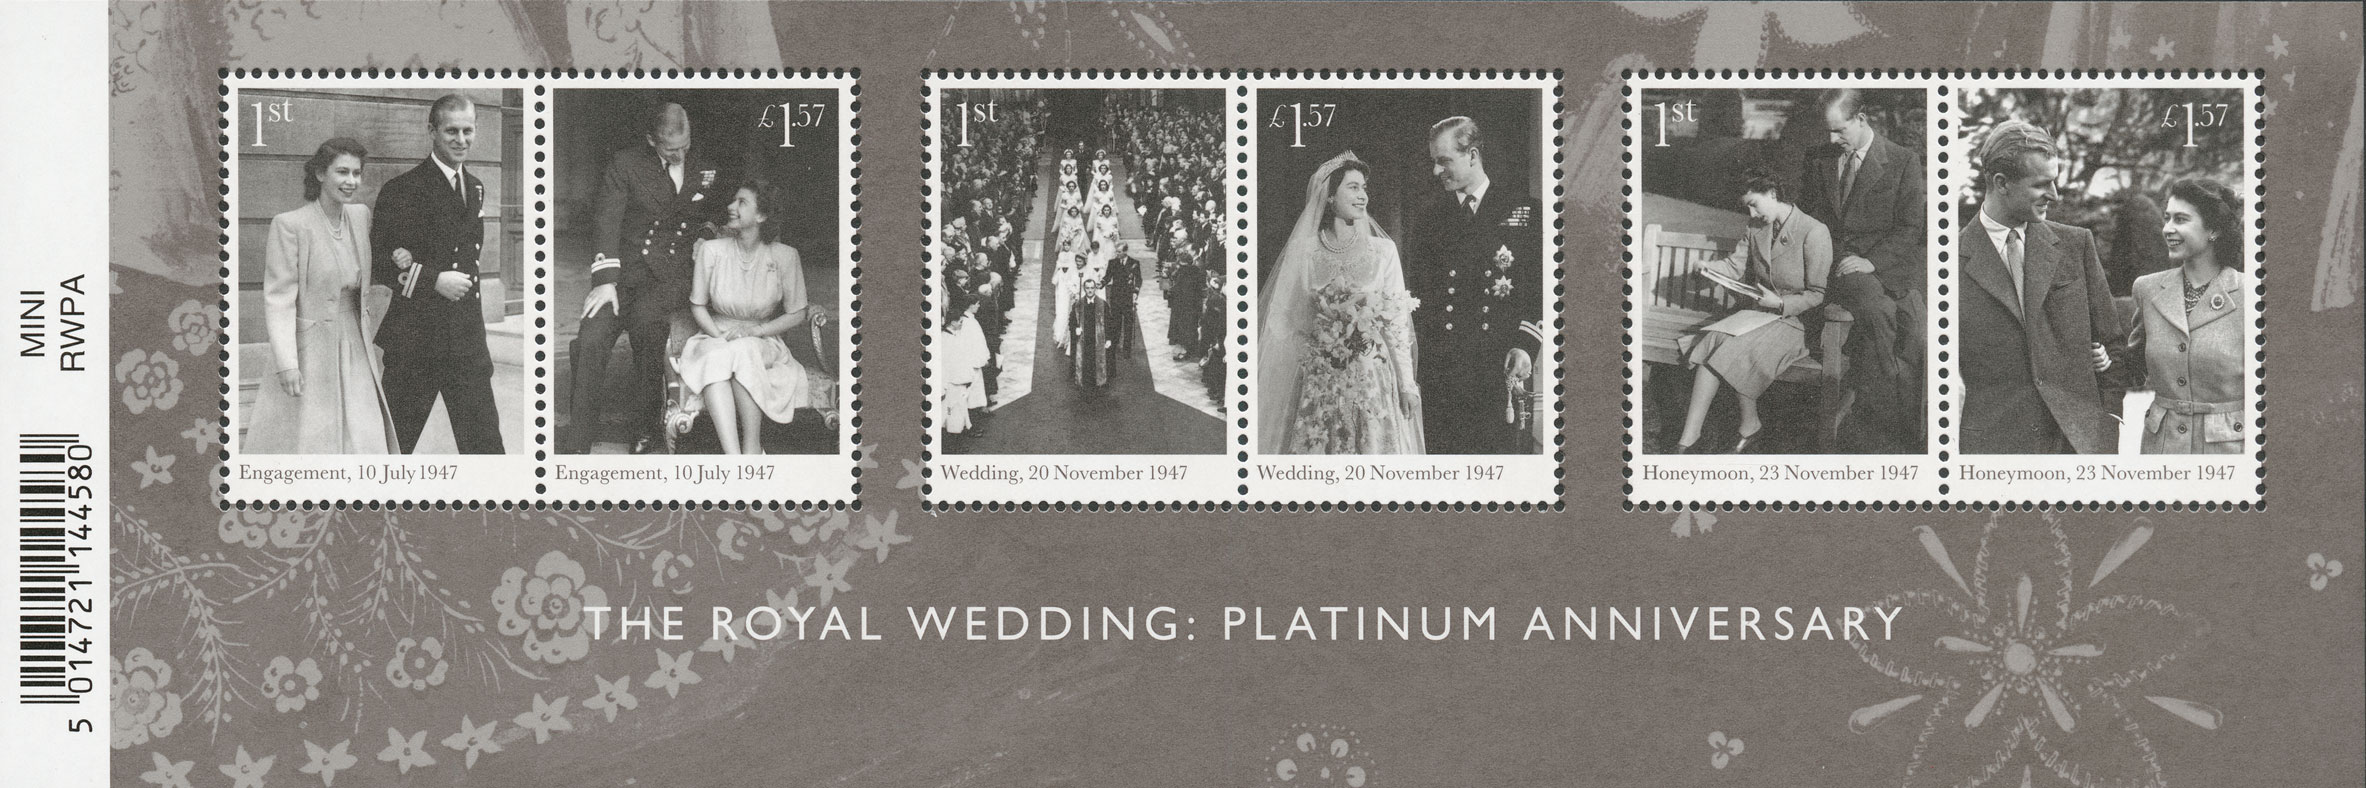 A miniature sheet featuring 6 stamps from the engagement, wedding and honeymoon of Queen Elizabeth II and the Duke of Edinburgh.